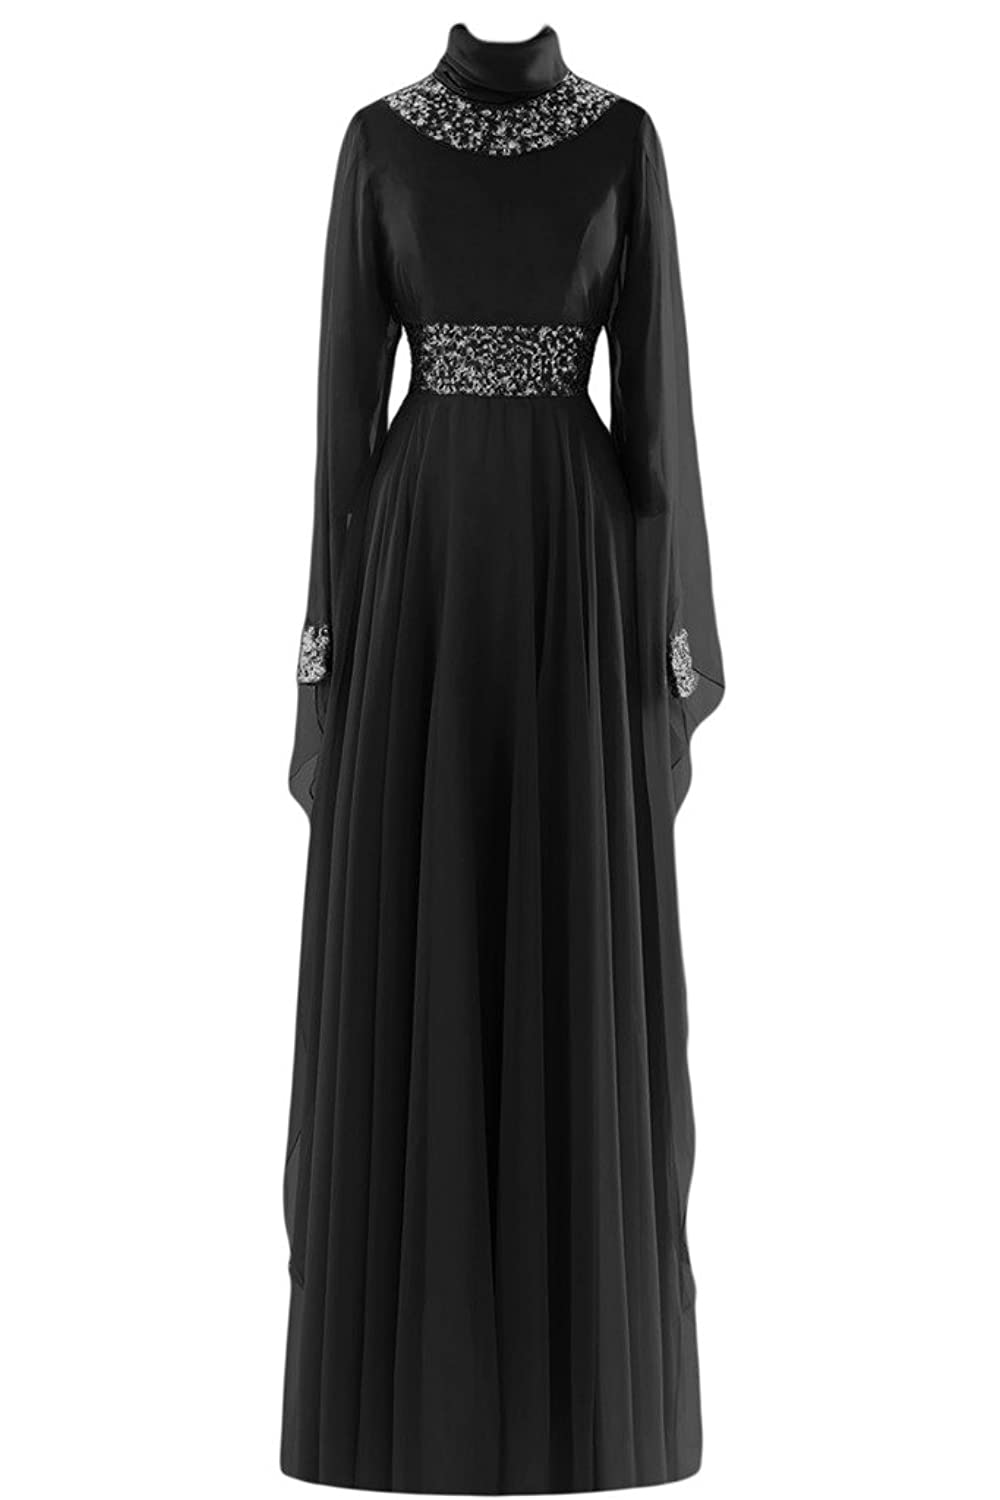 Sunvary A-Line Long Sleeves High Collar Prom Dress Ball Gown Dresses